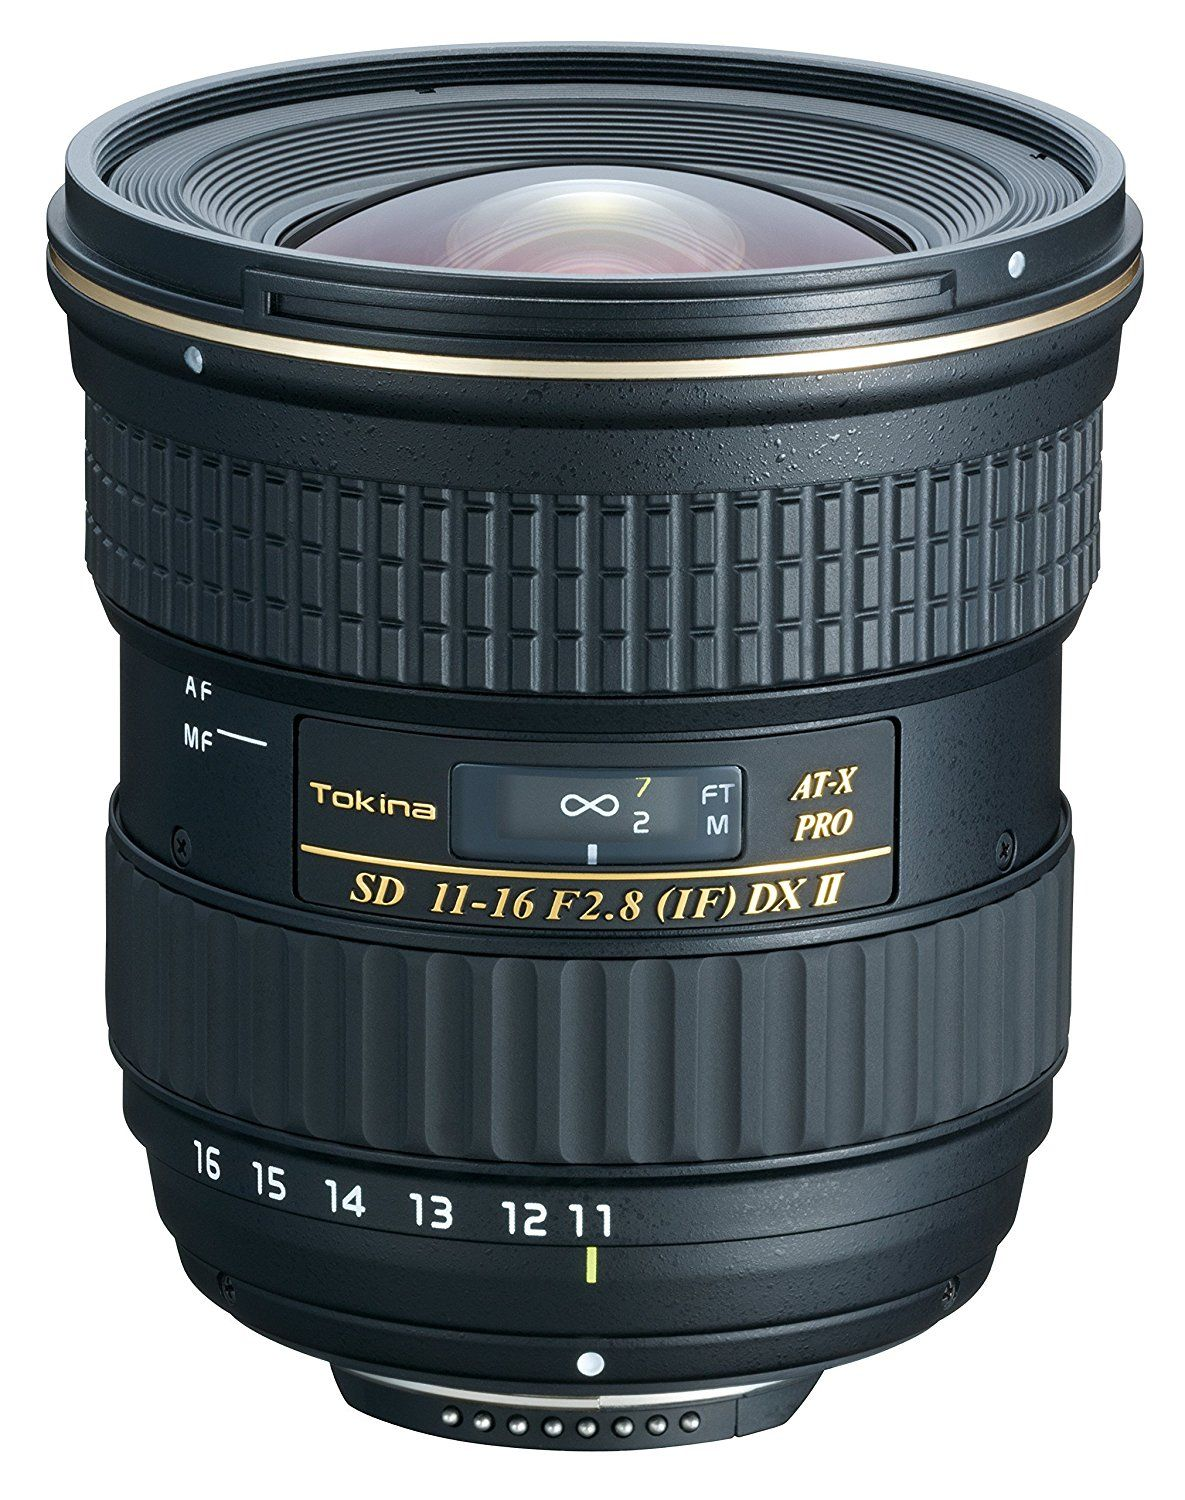 The Best Low Budget Wide Angle Lens Find Me On The Mountain Zoom Lens Dslr Lenses Canon Lens